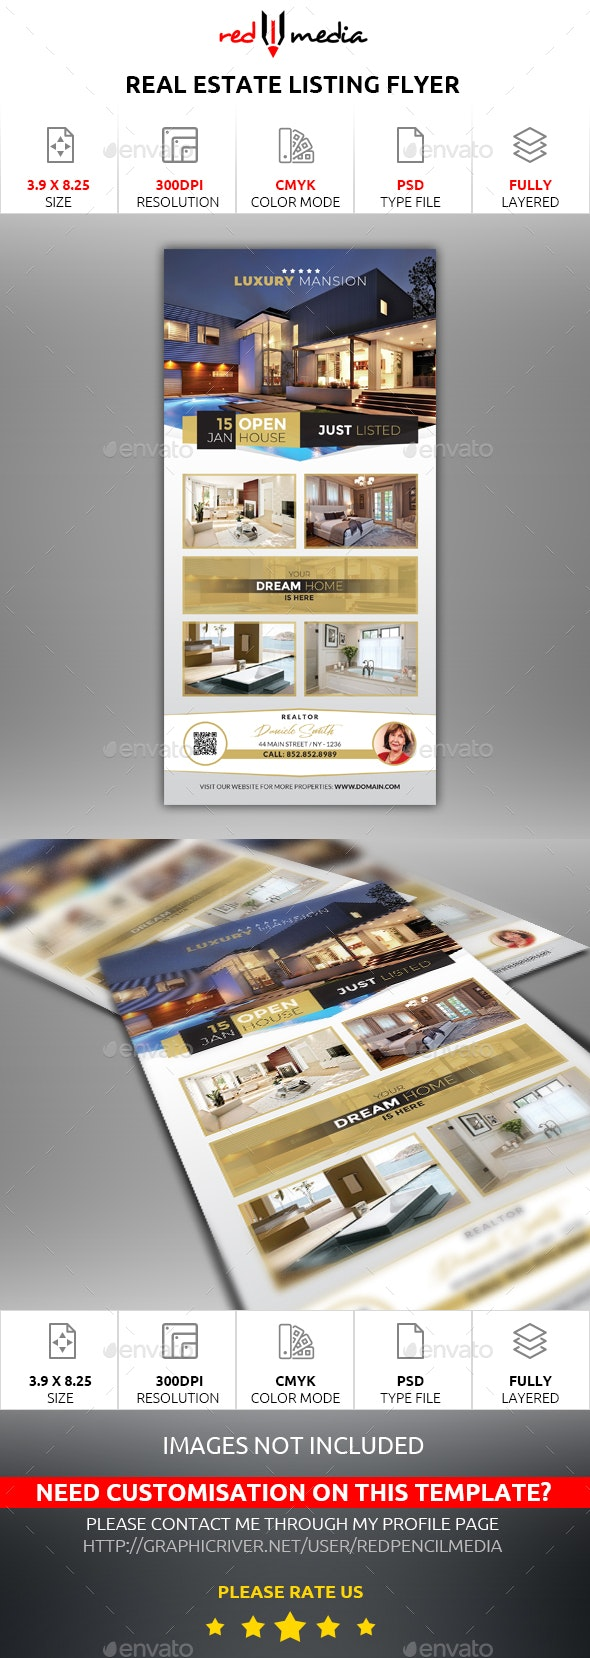 Real Estate Listing Flyer - Commerce Flyers